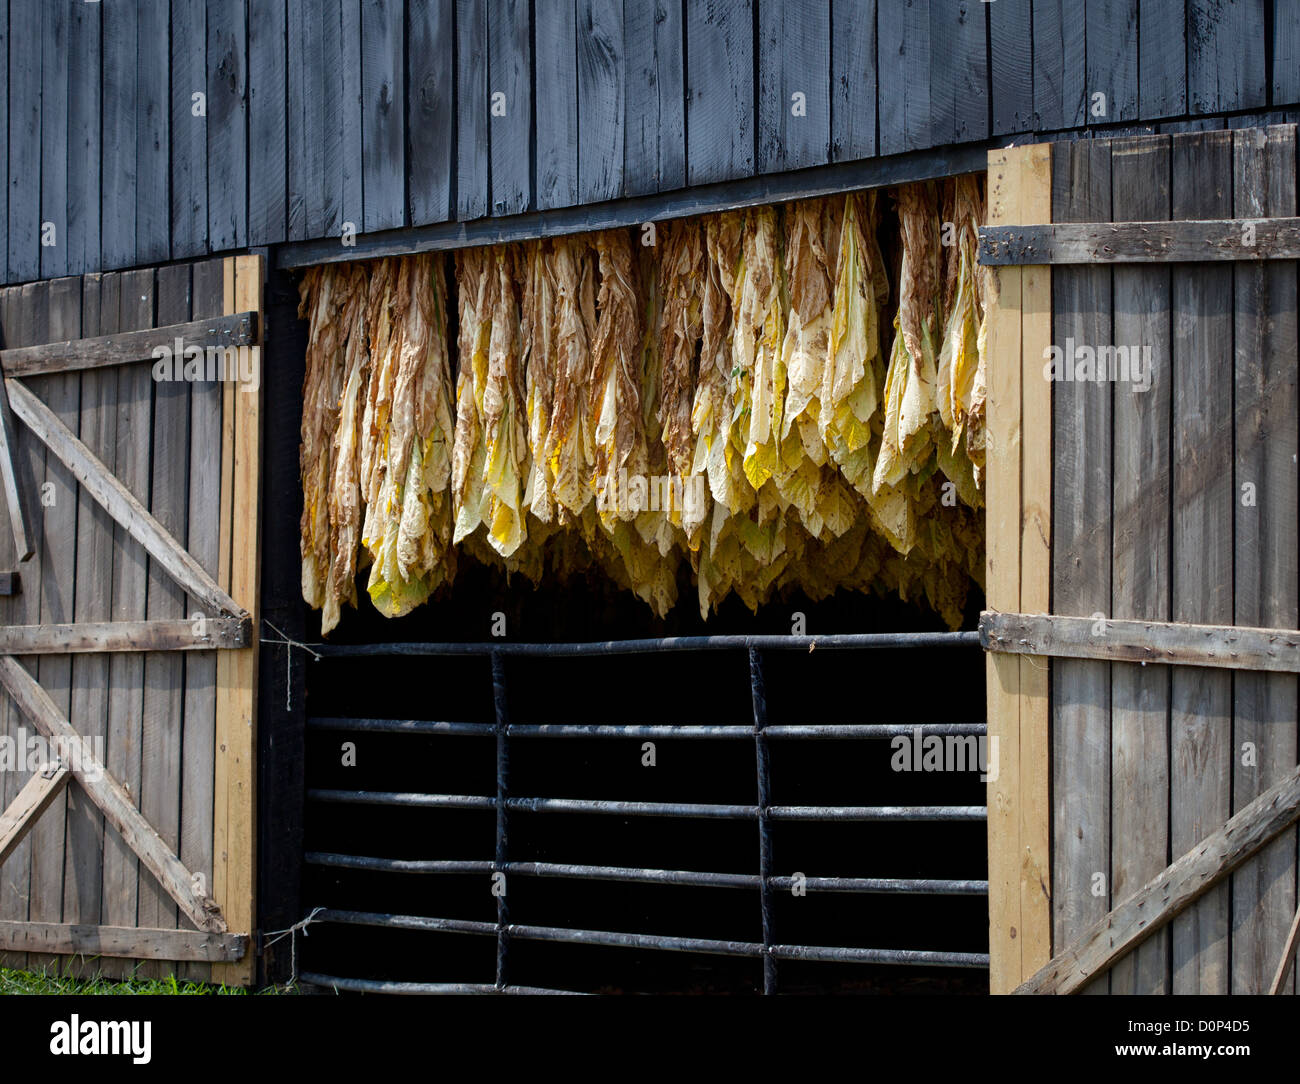 Row of tobacco leaves curing in a barn - Stock Image